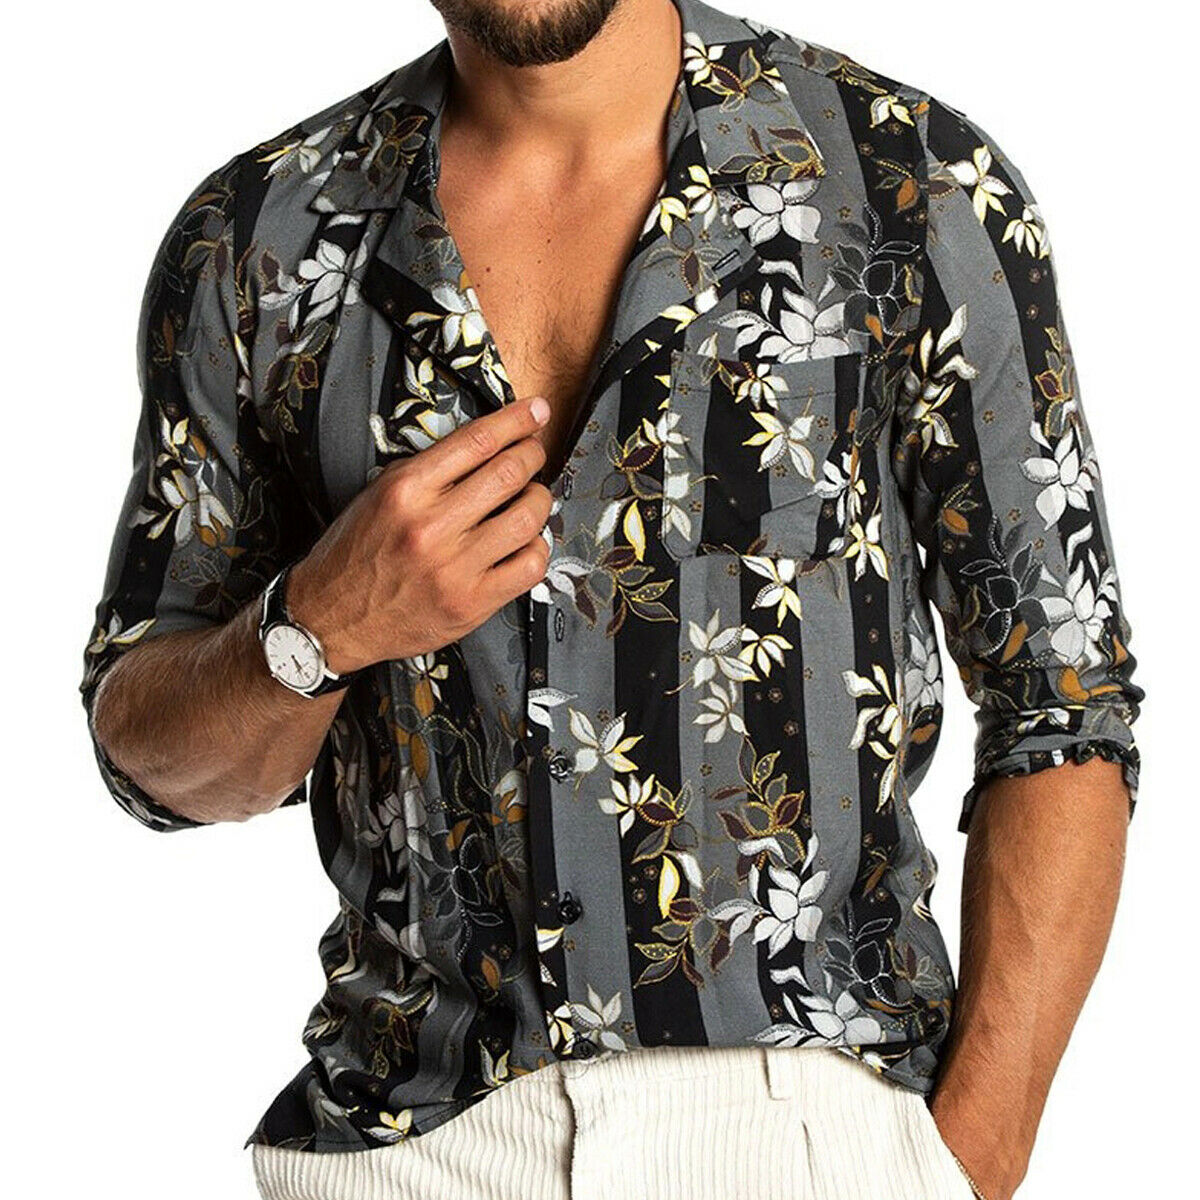 Fashion Summer Mens Hawaiian Shirt Beach Style Floral V Neck Casual Shirts Blouse Hawaii Aloha Party Summer Holiday Fancy Tops